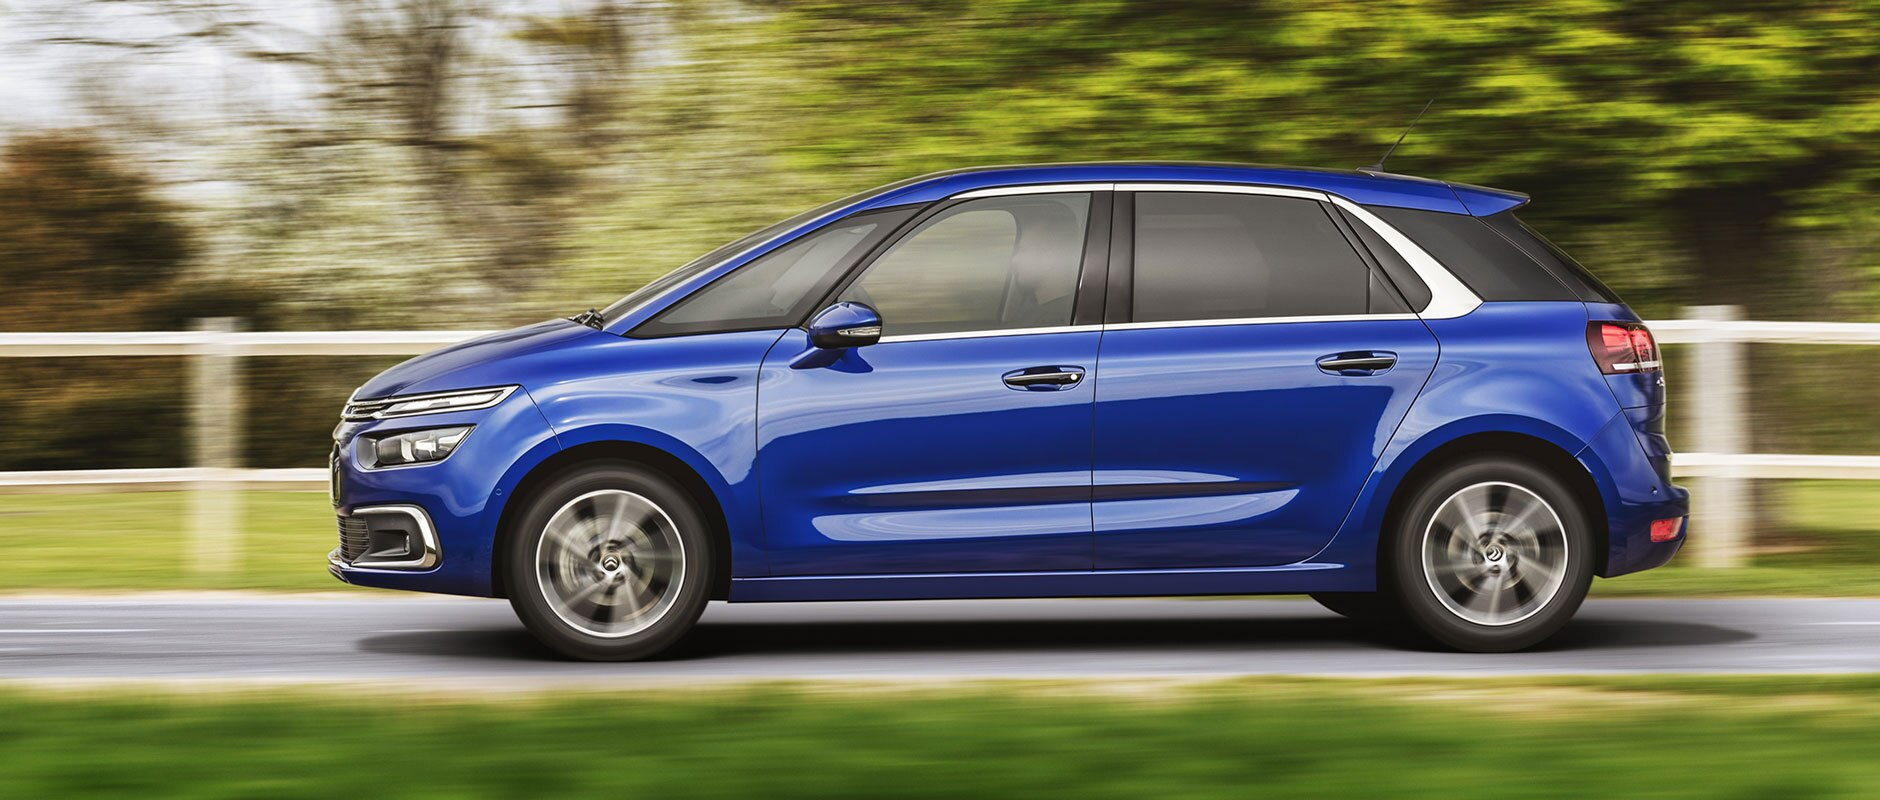 C4 Picasso active safety brake